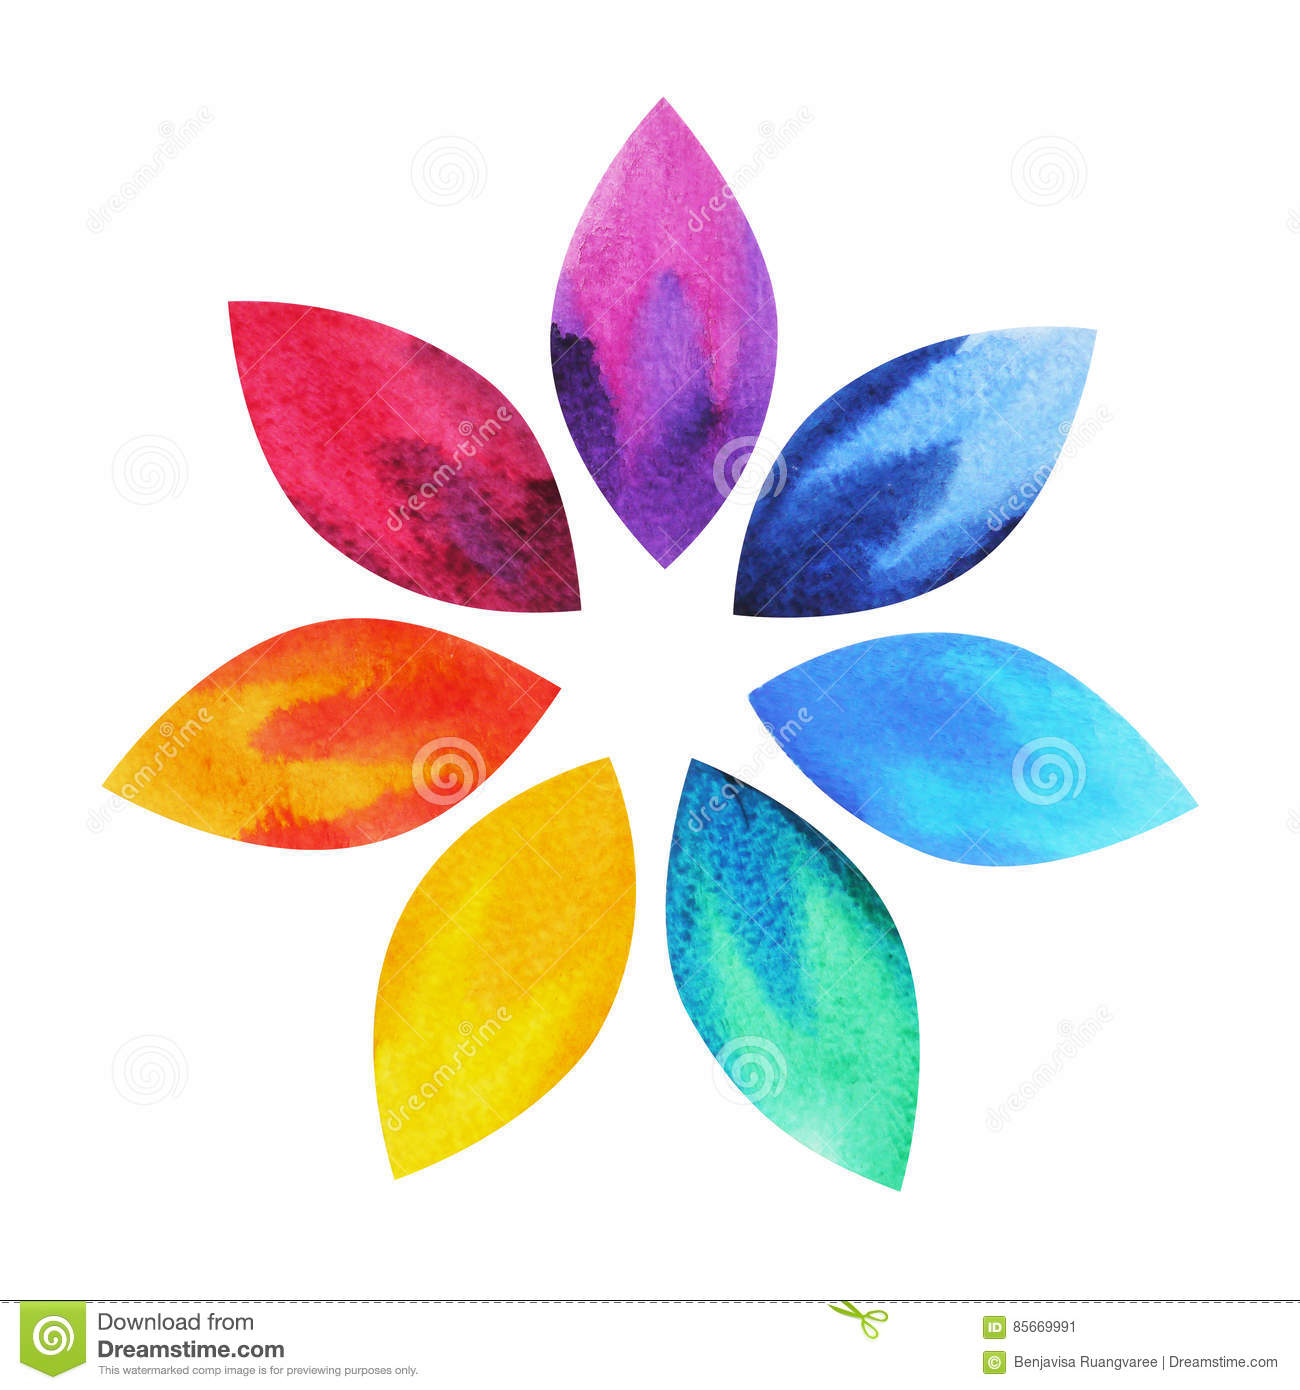 7 color of chakra sign symbol colorful lotus flower icon stock 7 color of chakra sign symbol colorful lotus flower icon mightylinksfo